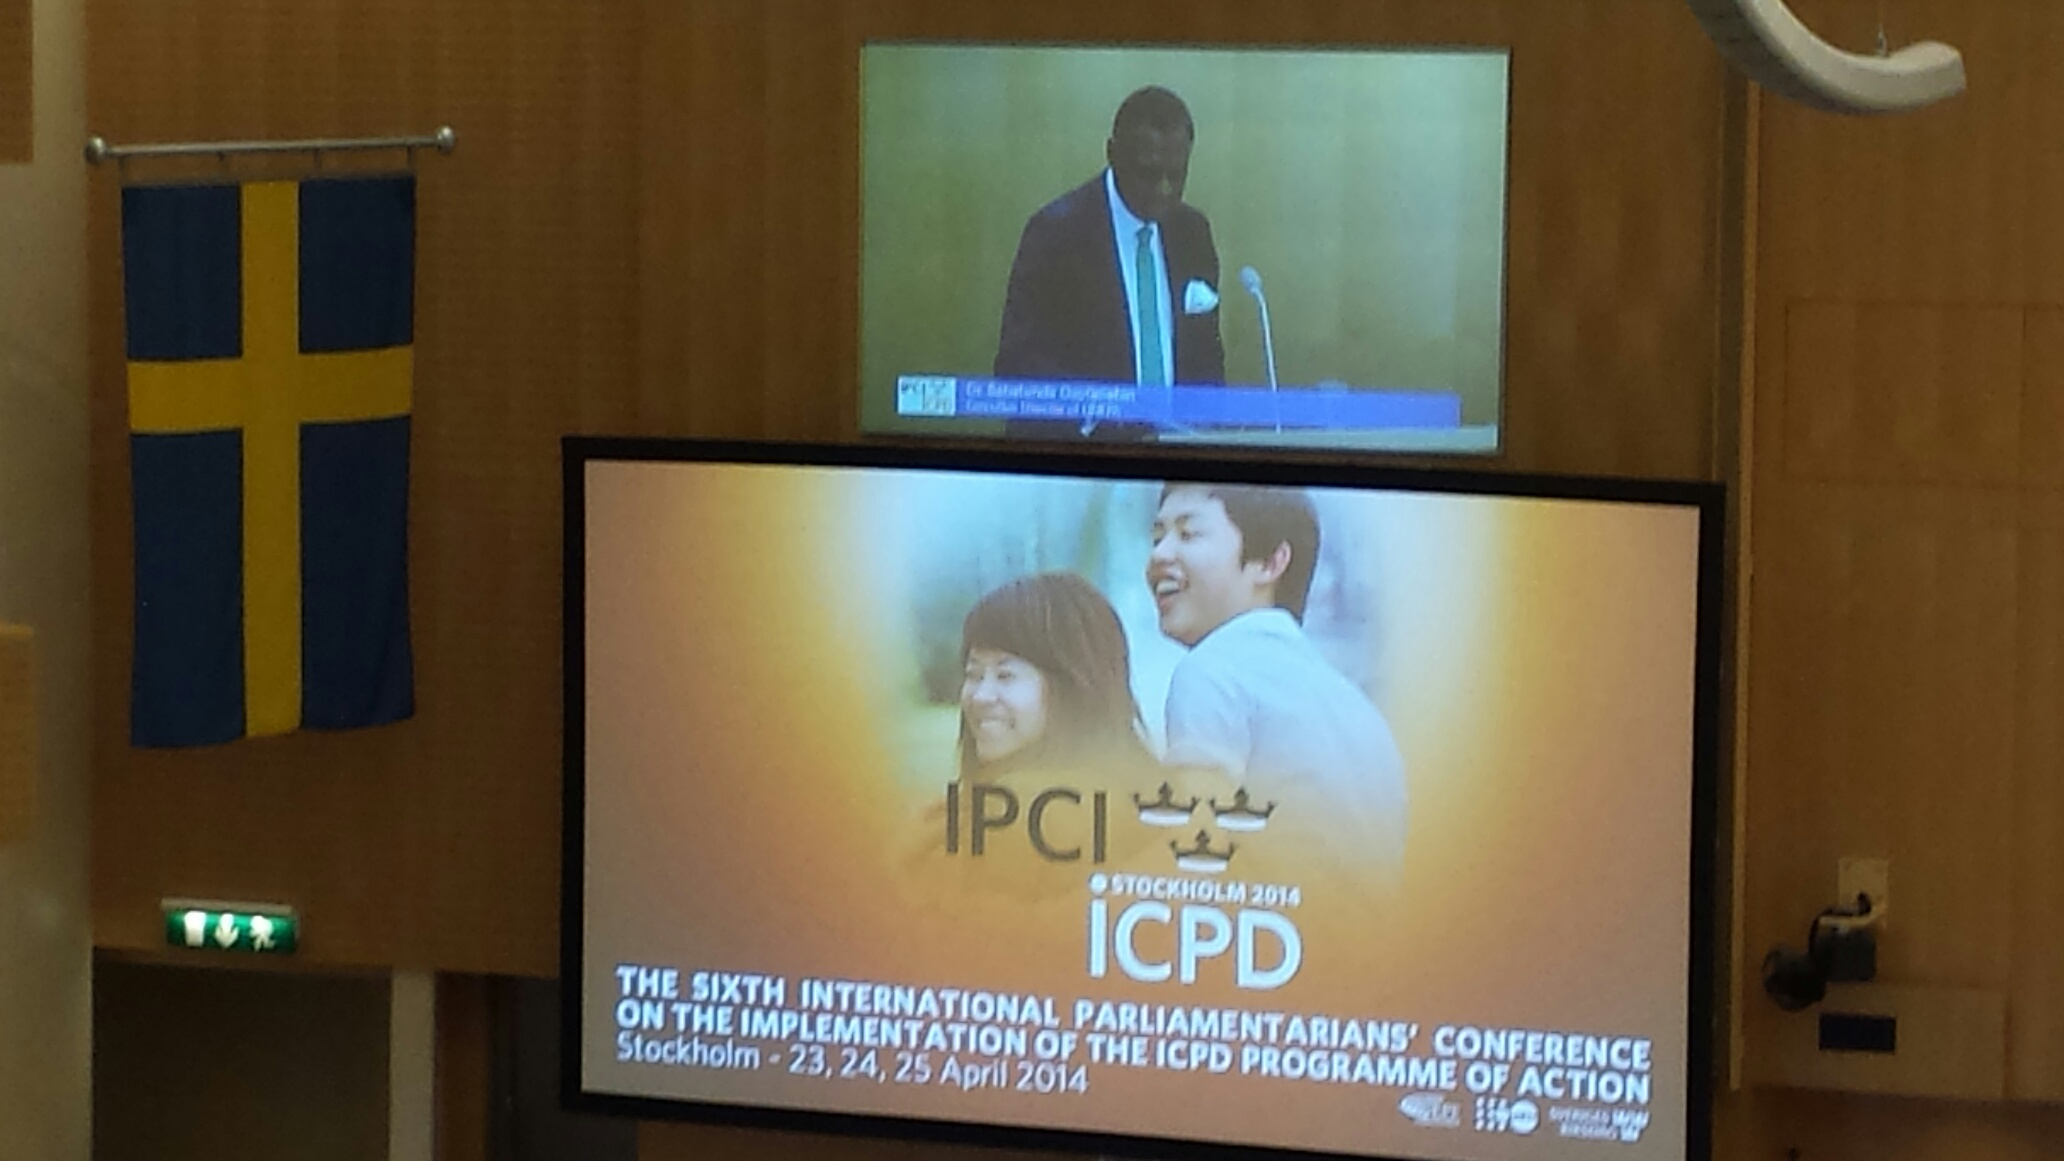 The sixth international parliamentarians' conference on the implementation of the ICPD Programme of Action, with Dr. Babatunde Osotimehin of UNFPA as one of the initial speakers. The sixth international parliamentarians' conference on the implementation of the ICPD Programme of Action, with Dr. Babatunde Osotimehin of UNFPA as one of the initial speakers.